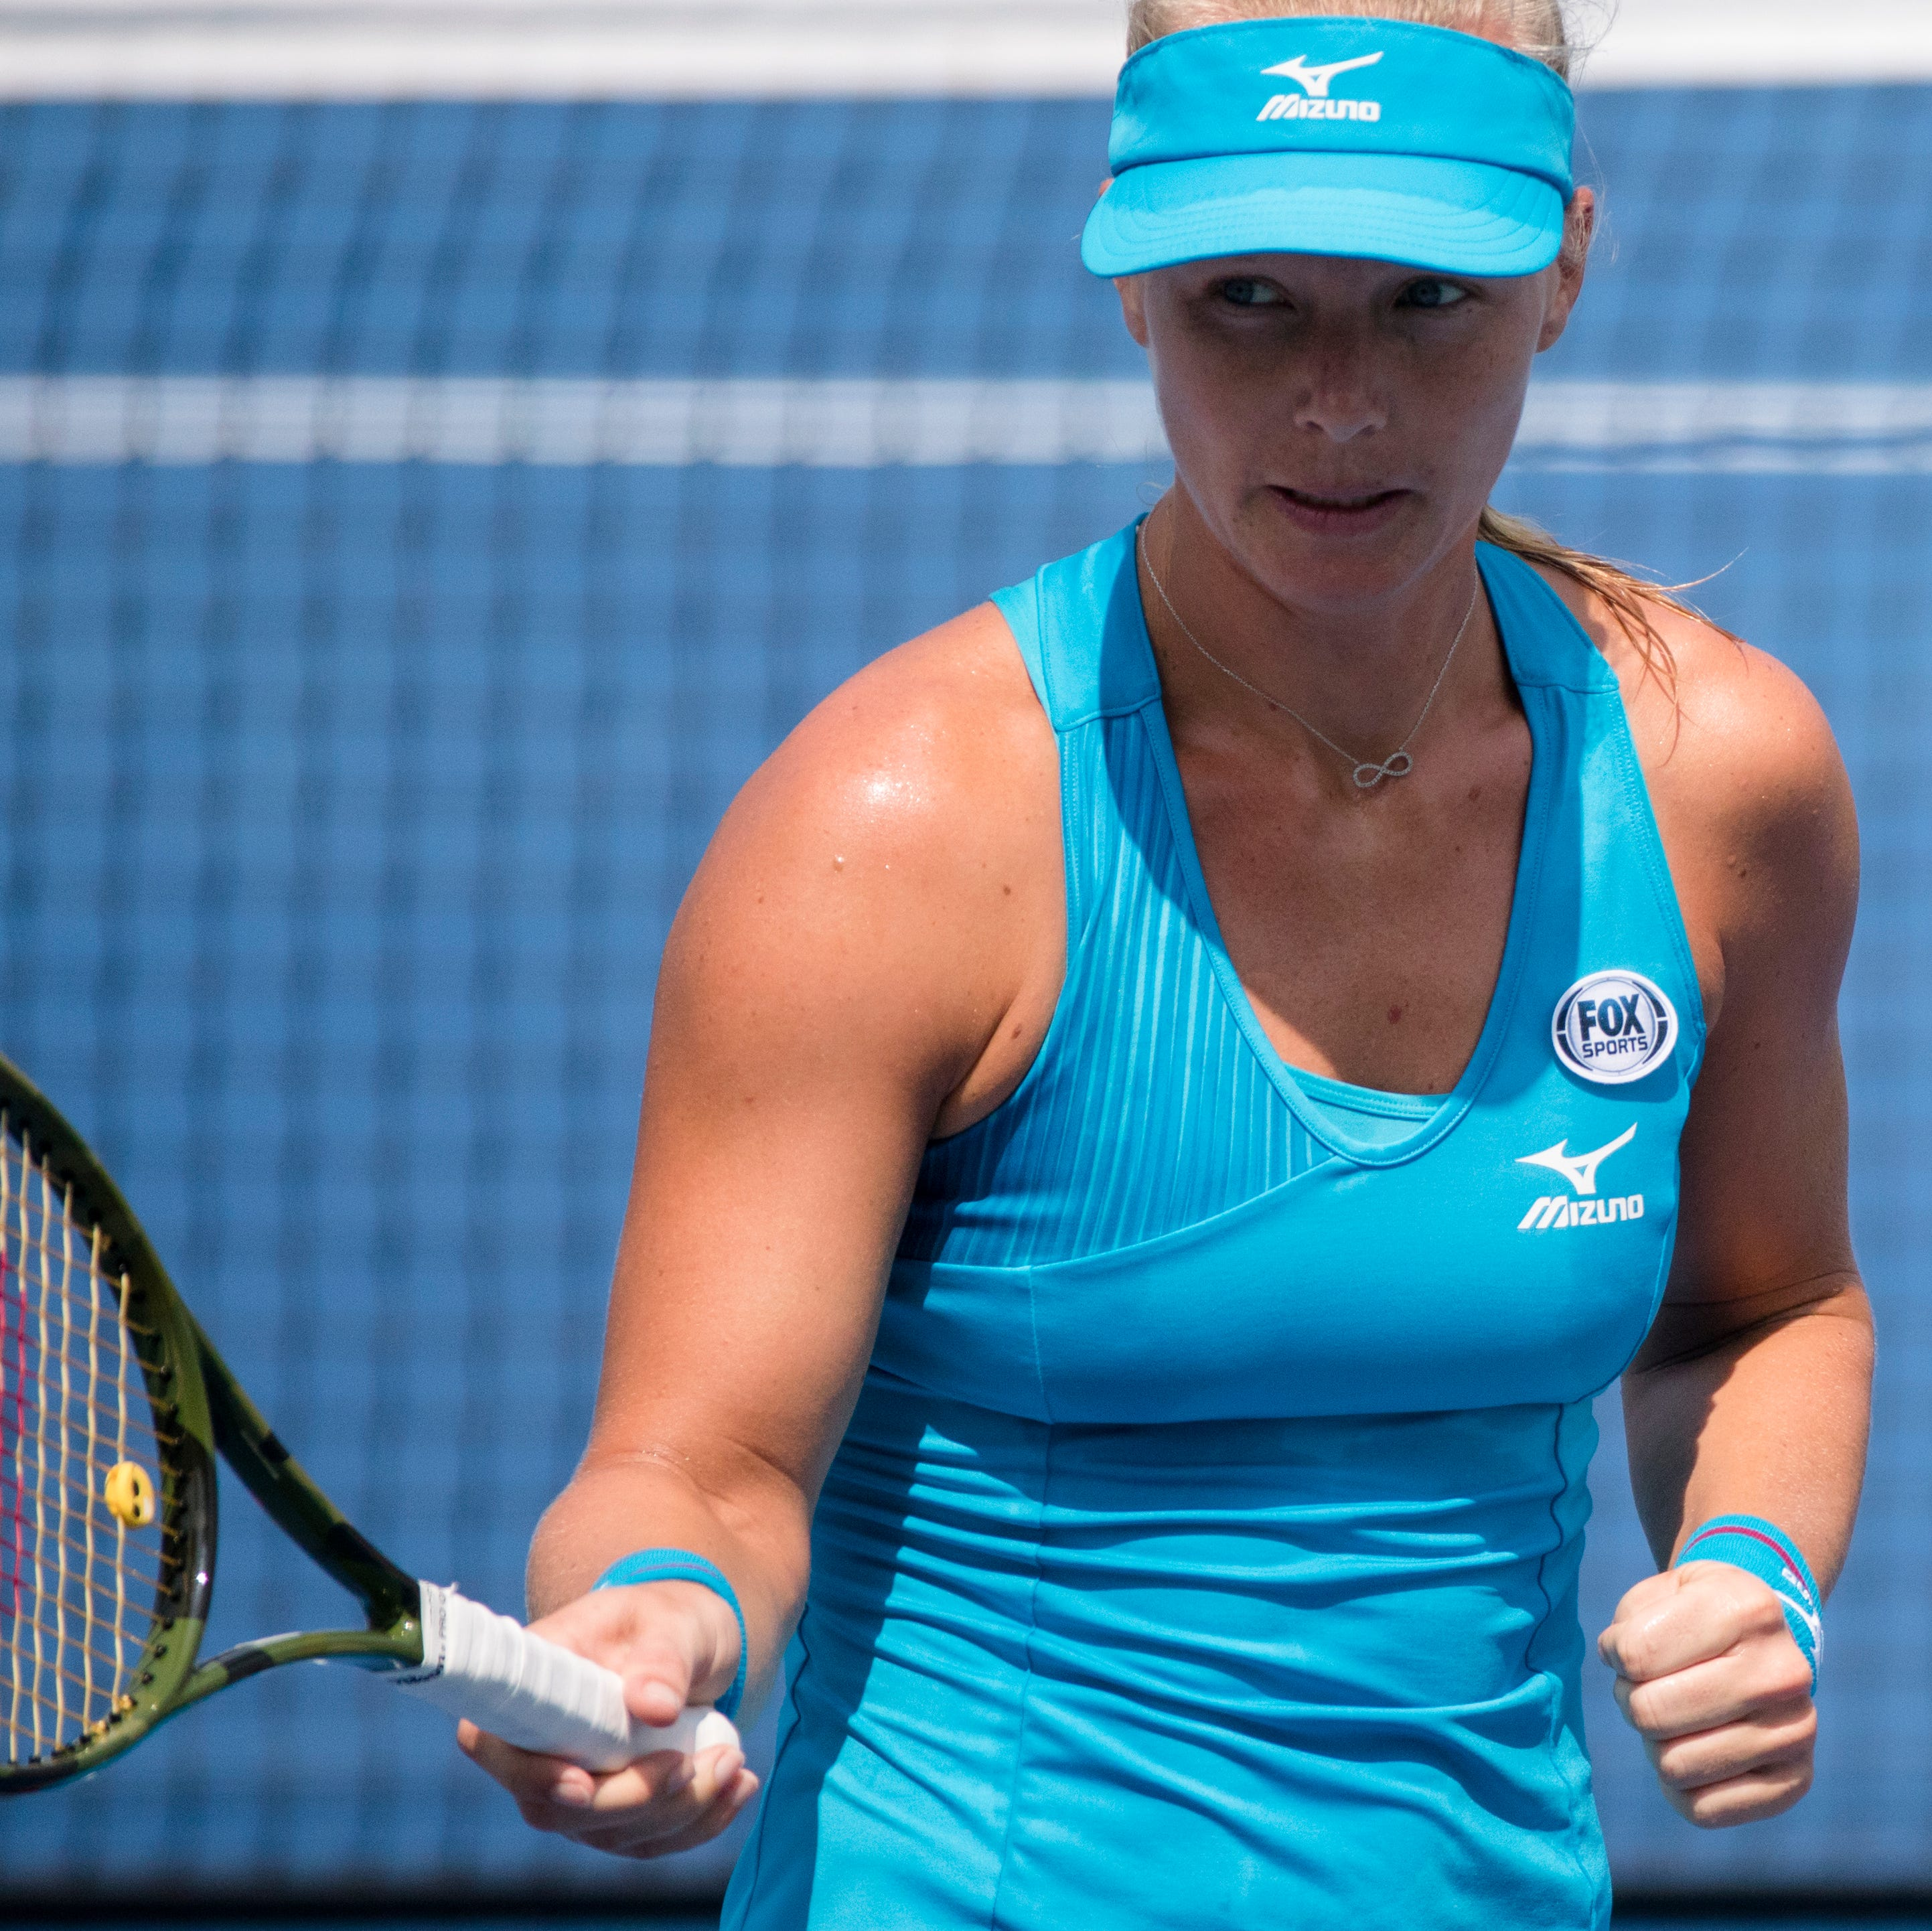 Kiki Bertens upsets world No. 1 Simona Halep to win Western & Southern Open title